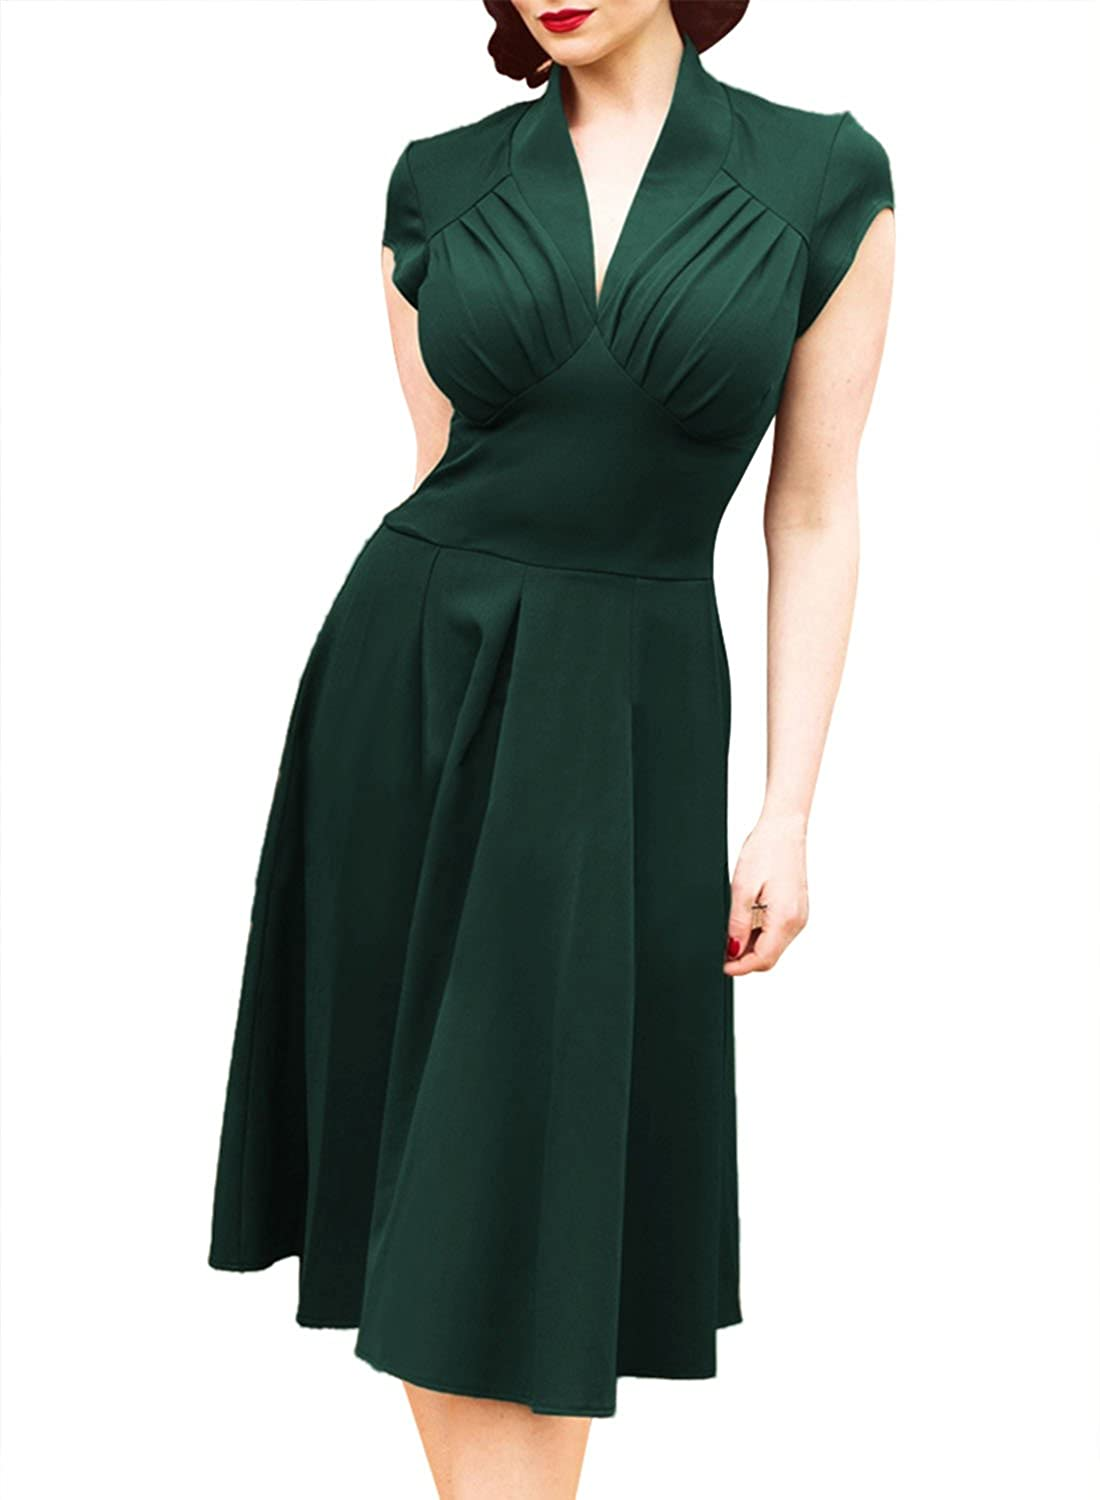 1940s Costumes- WW2, Nurse, Pinup, Rosie the Riveter Sweetmeet Womens 1940s Vintage Rockabilly Ball Gown Flared Dress Swing Skaters £25.99 AT vintagedancer.com